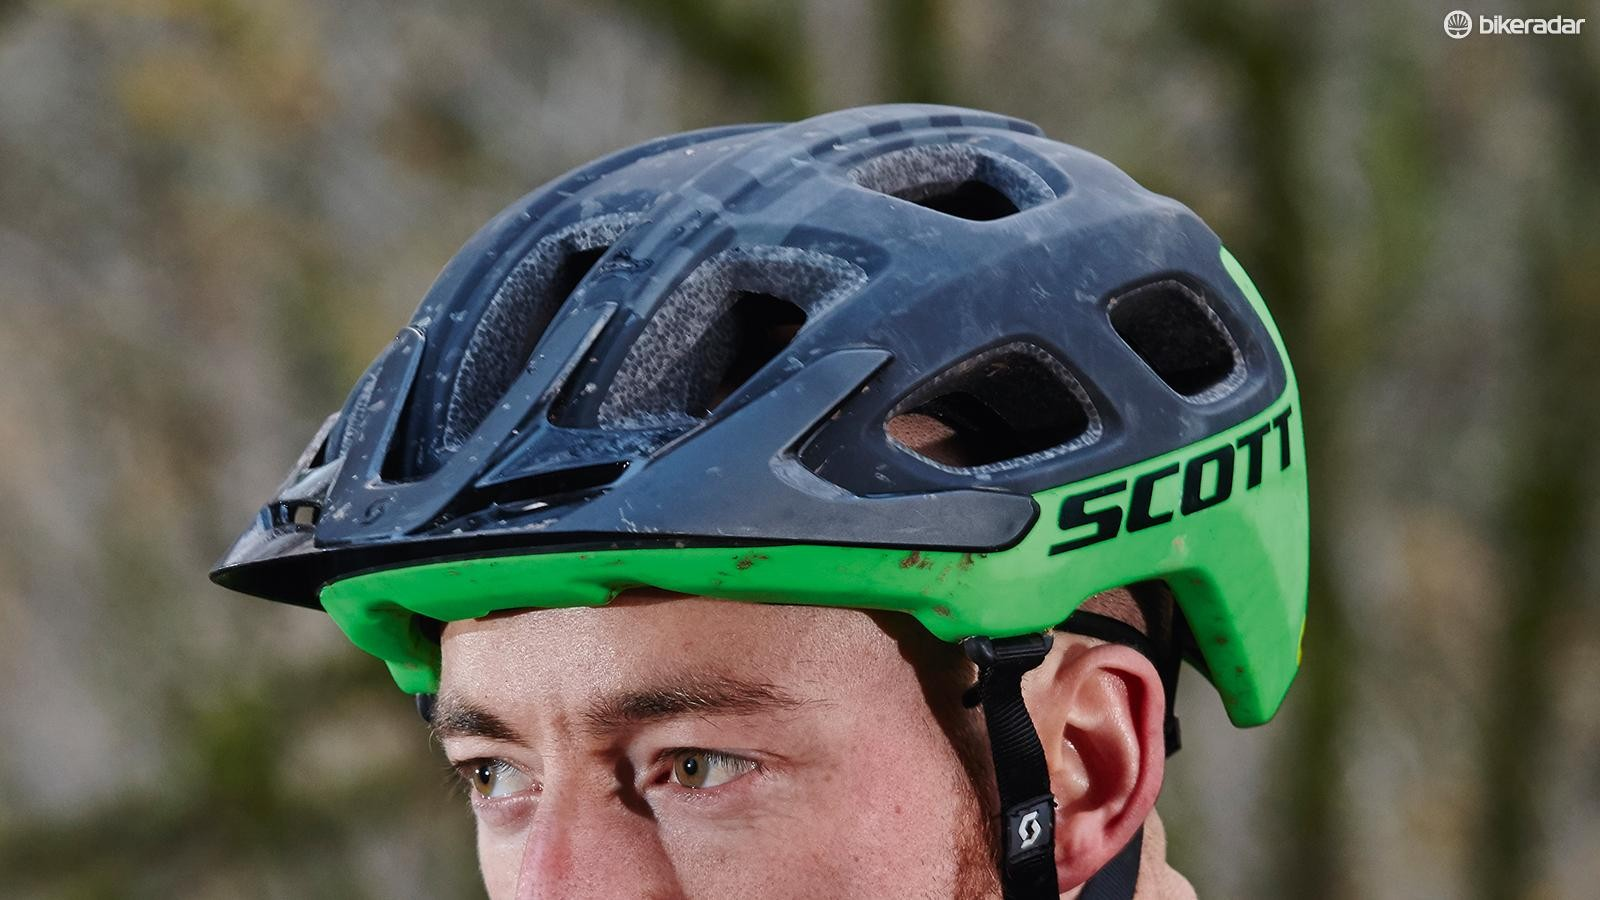 Scott's Vivo Plus helmet is a strong option for everyday trail riding